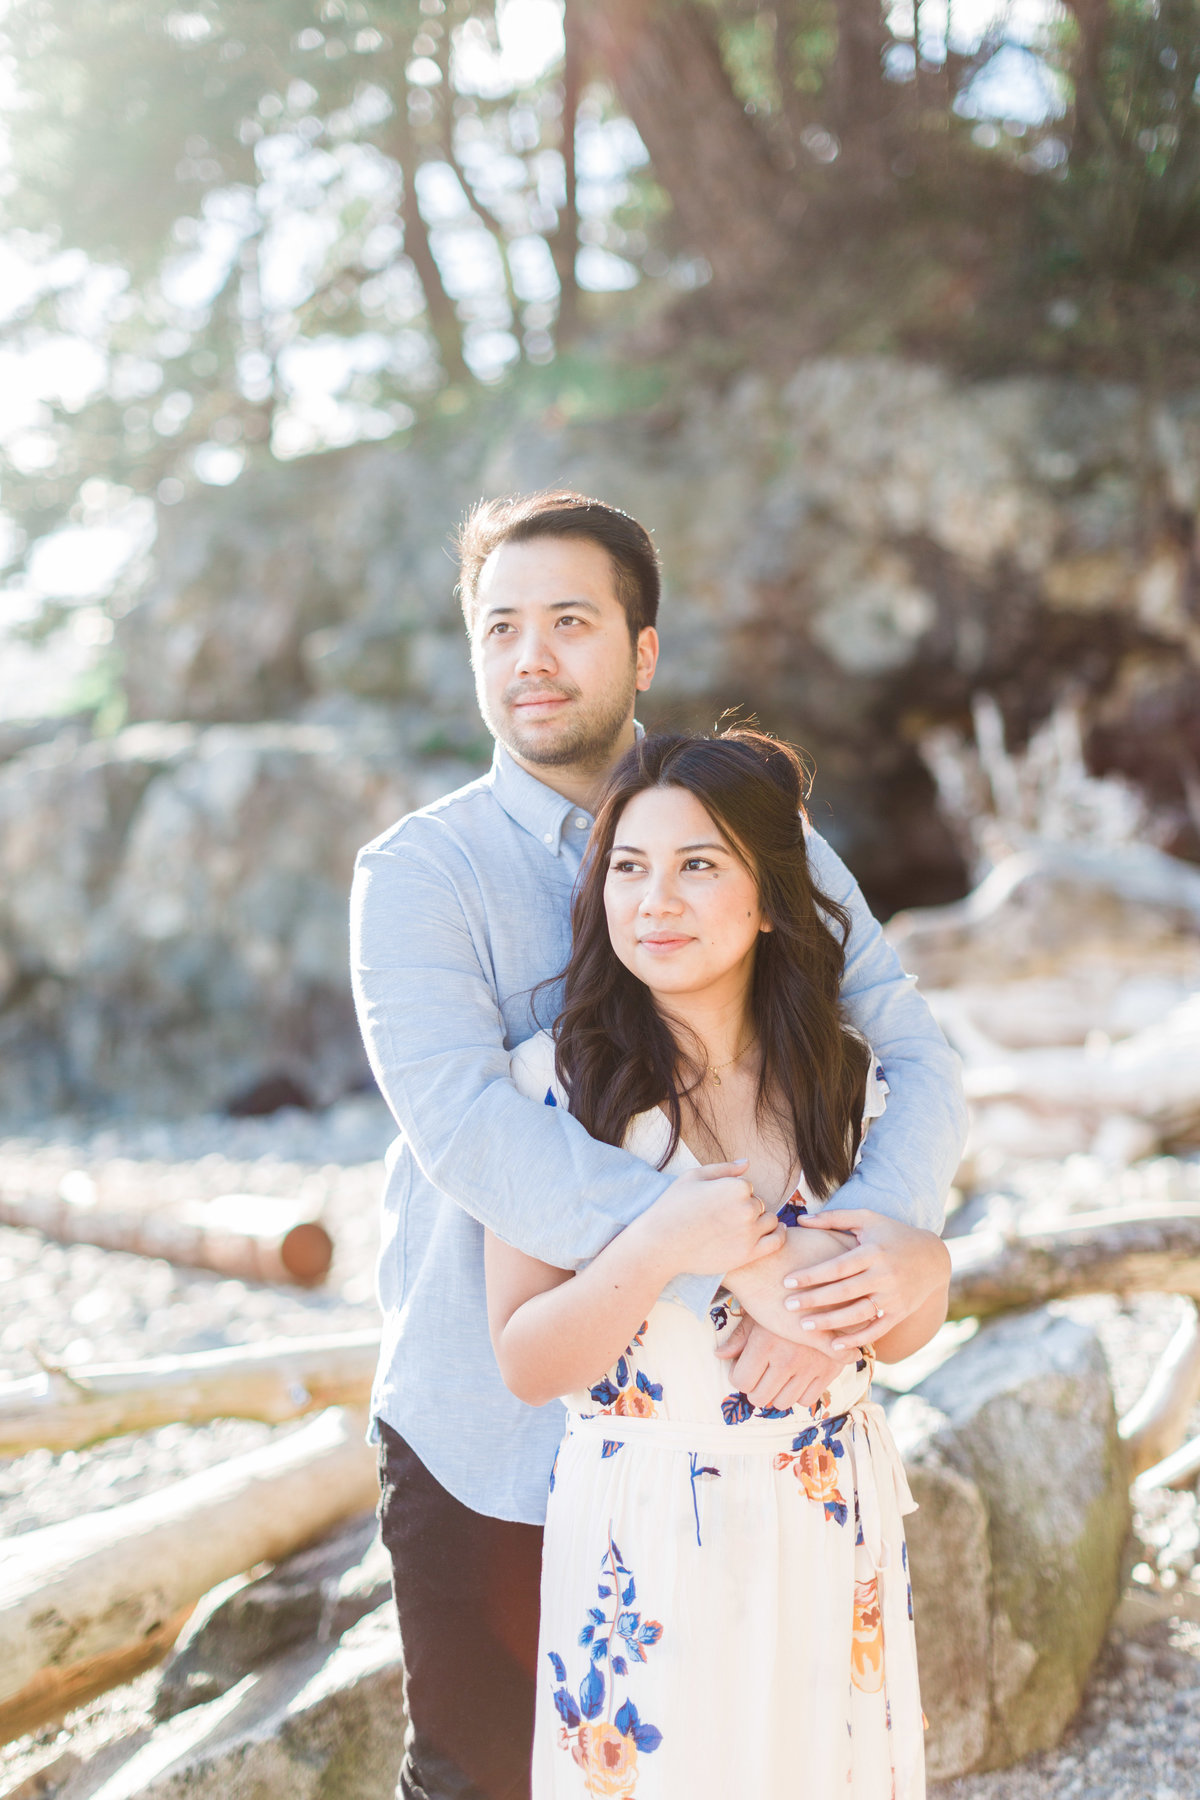 whytecliff-park-engagement-vancouver-blush-sky-photography-11